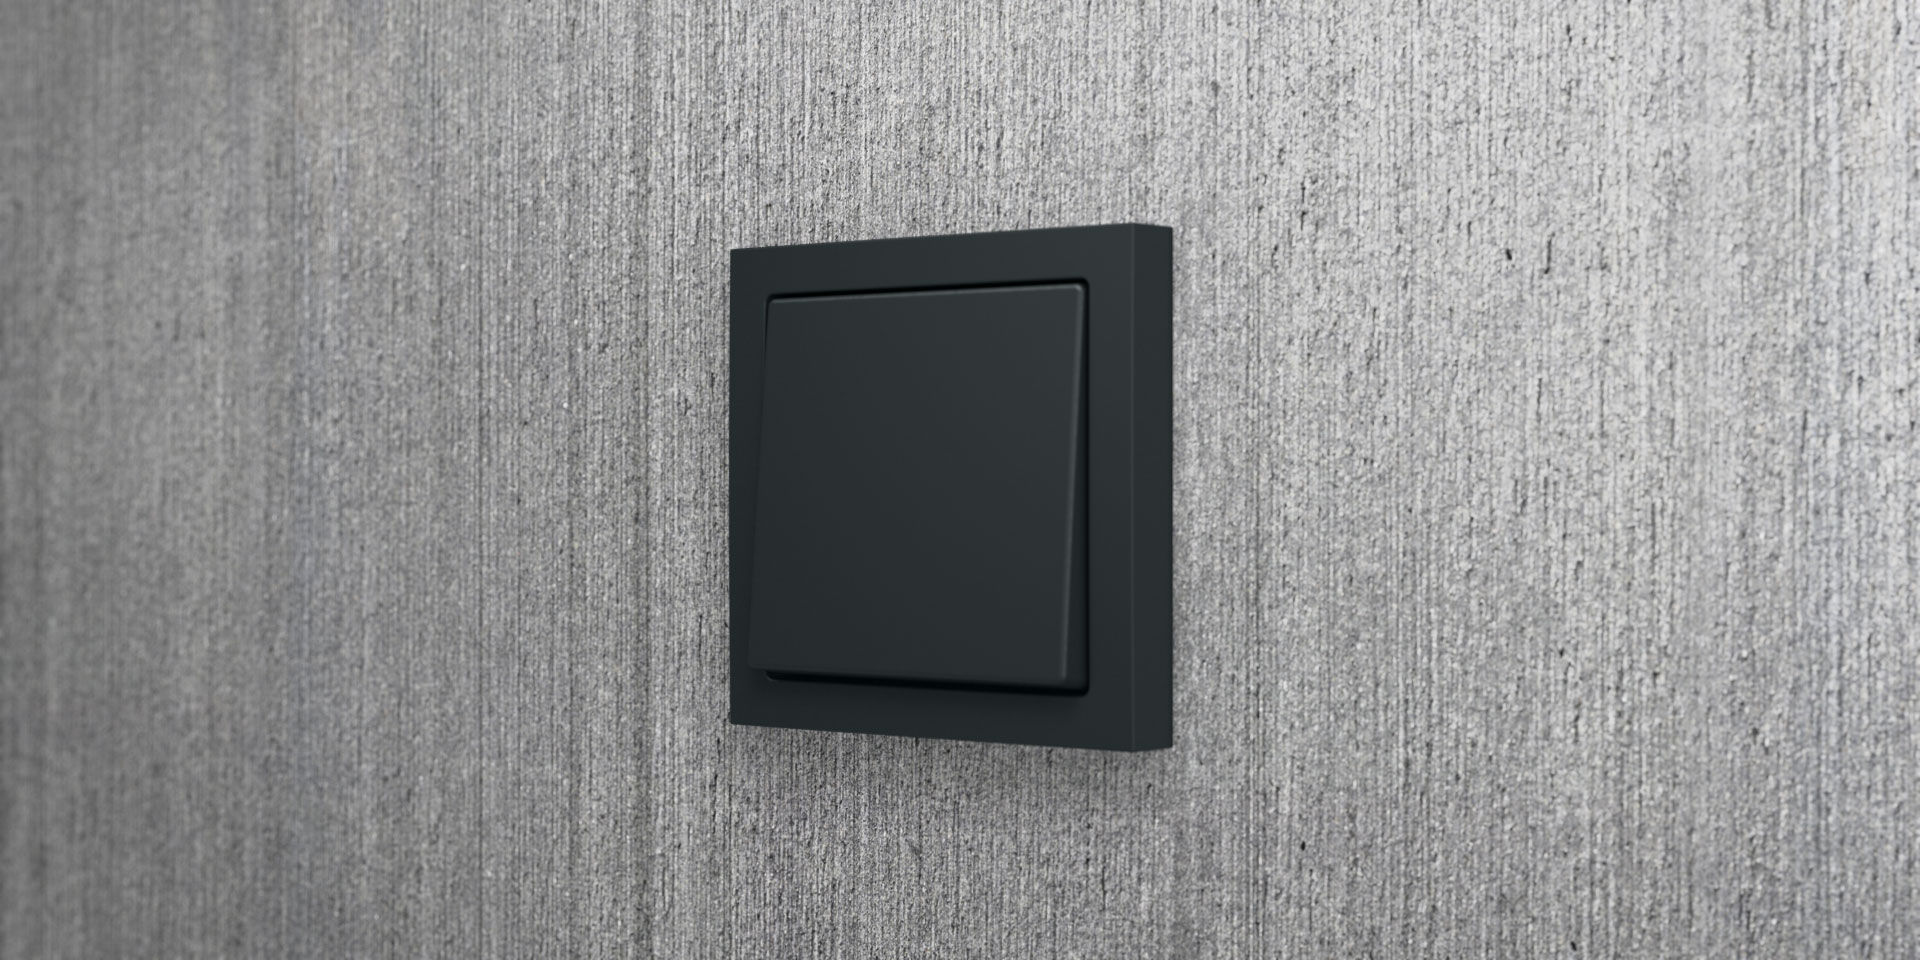 Light Switch Push On Contemporary With Electrical Socket